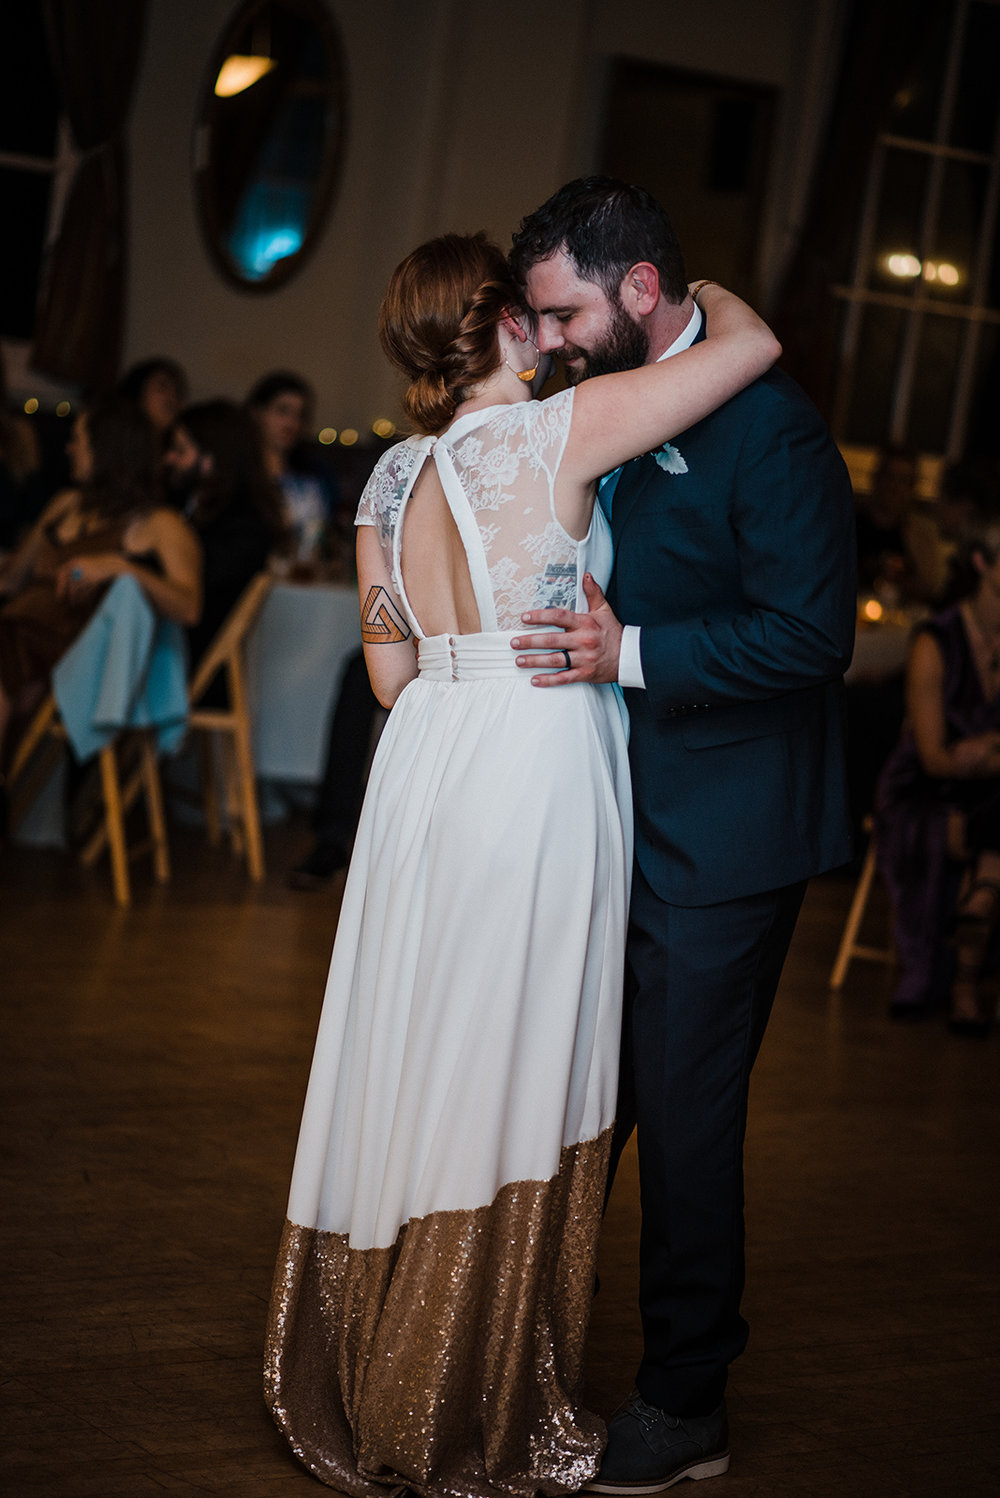 Jamie_Luke_Portland_Wedding_The_Foxes_Photography_569.jpg